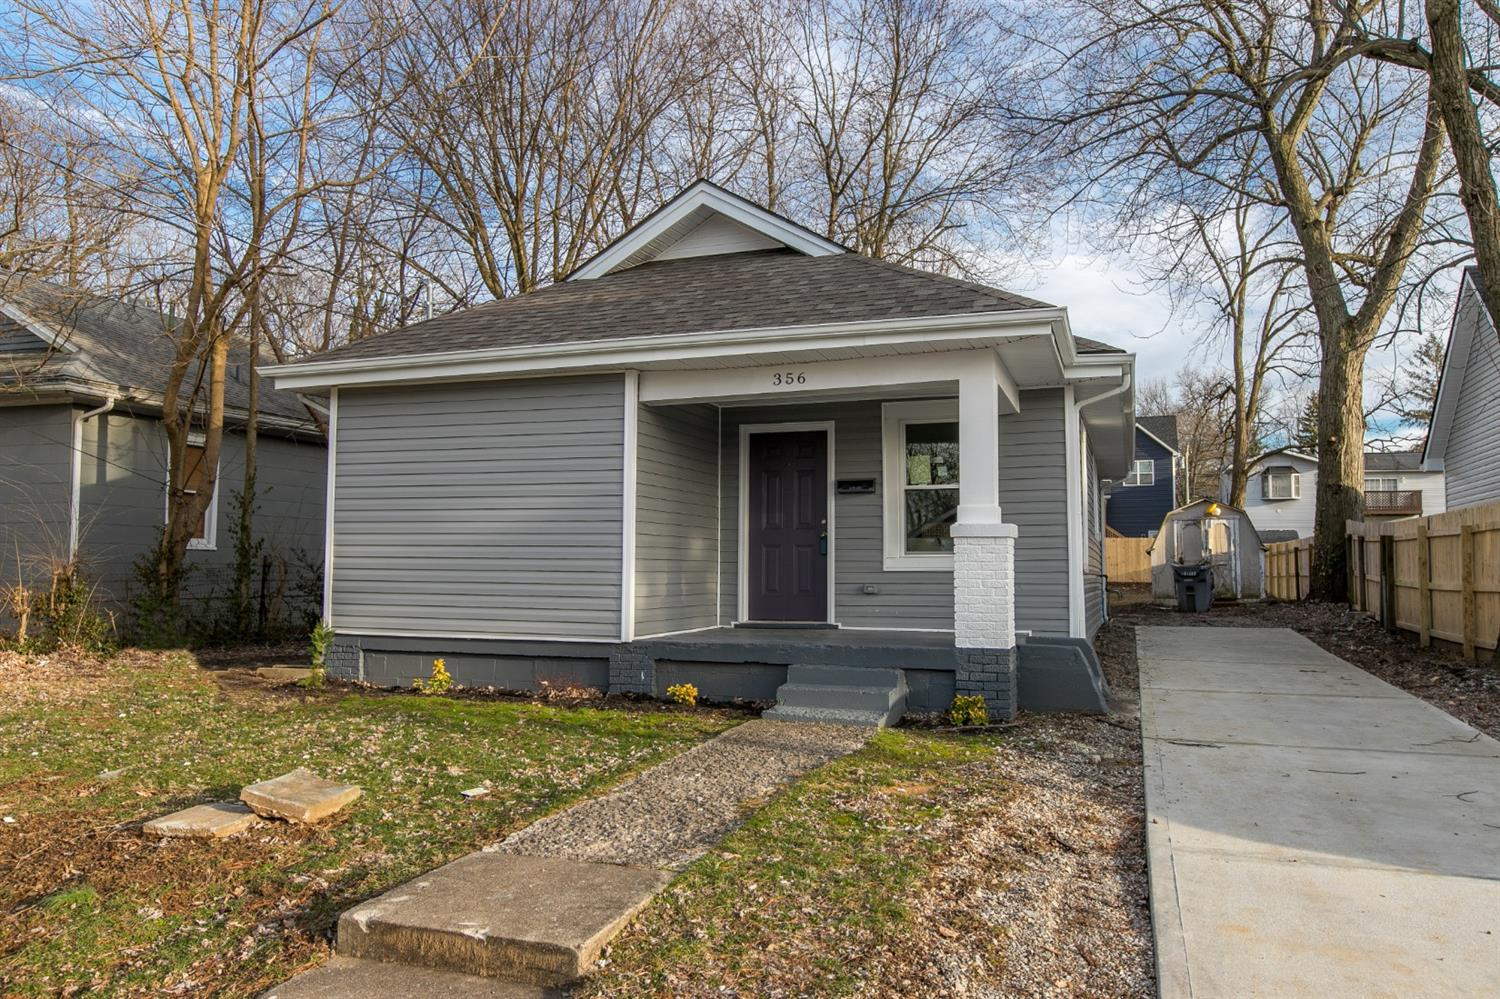 356 Lincoln Ave, Lexington, KY 40502